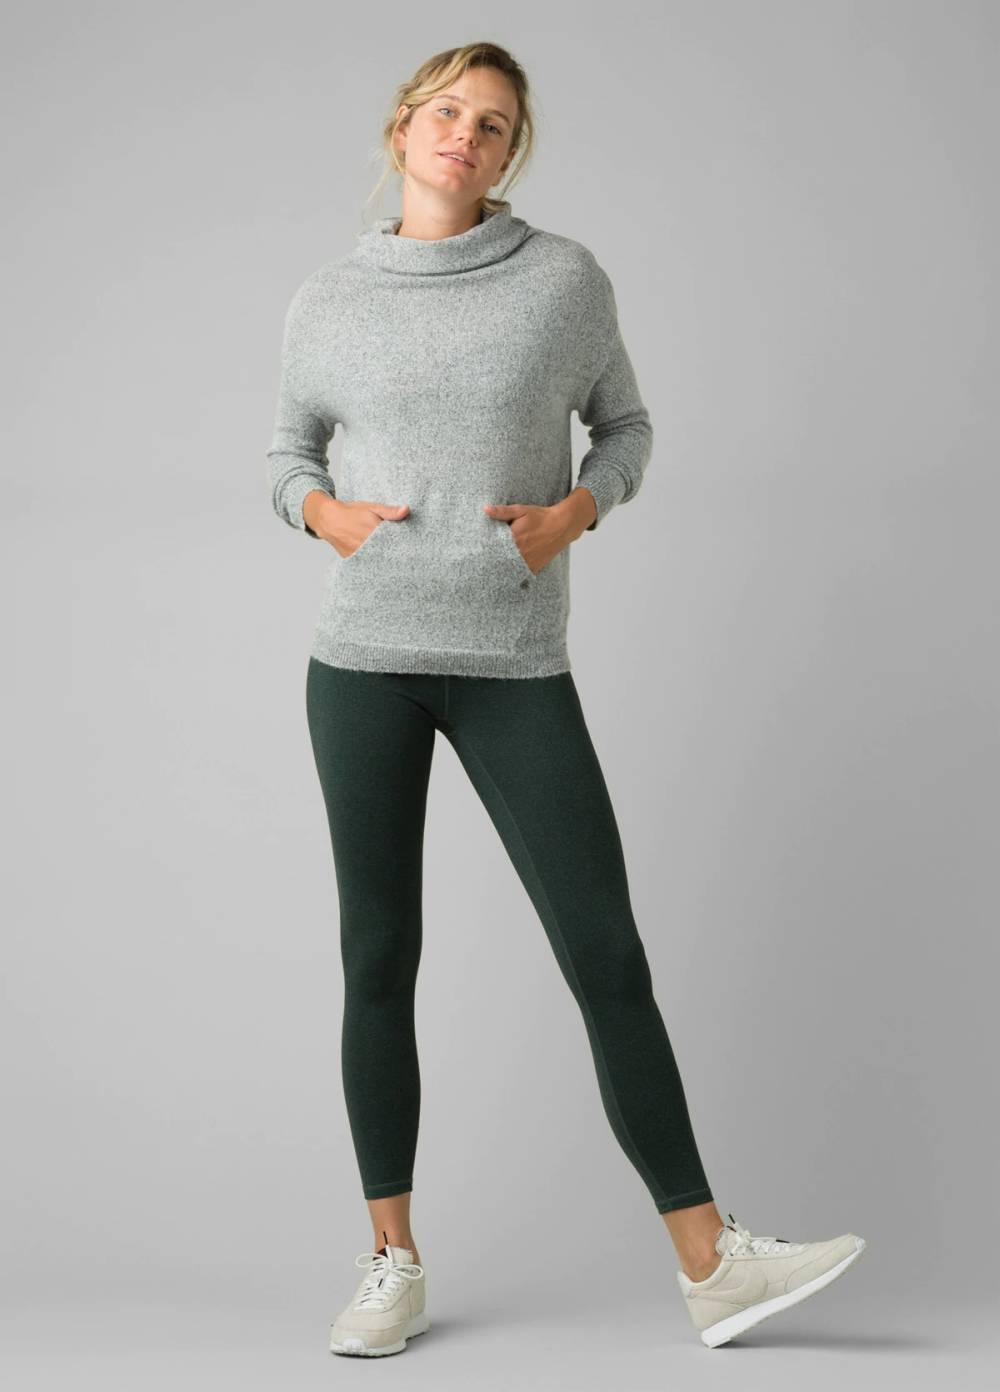 prana sweaters investment clothing pieces